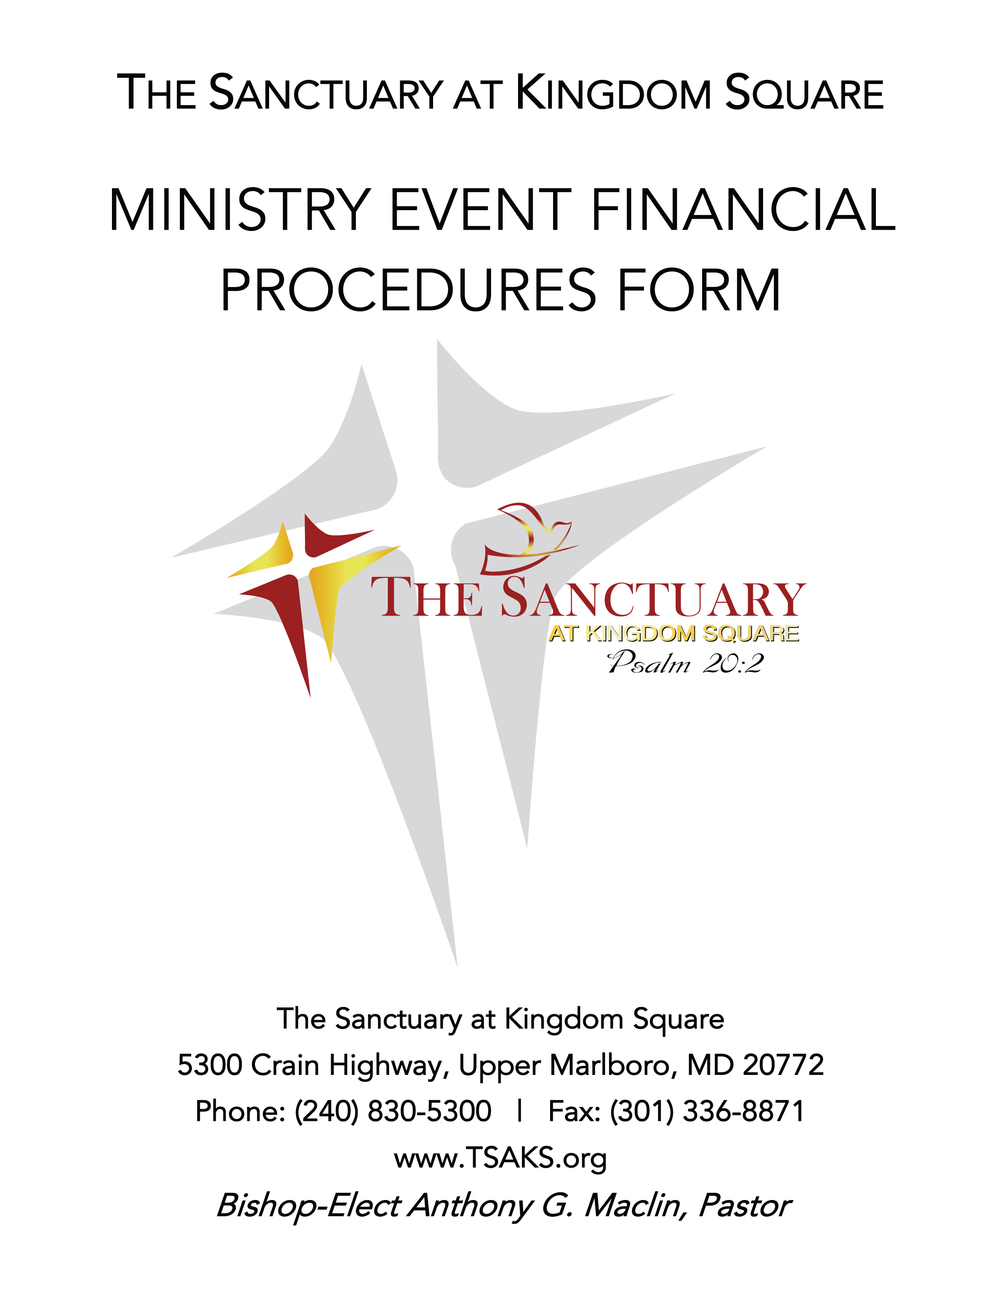 Ministry Event Financial Procedures Form rvsd.png